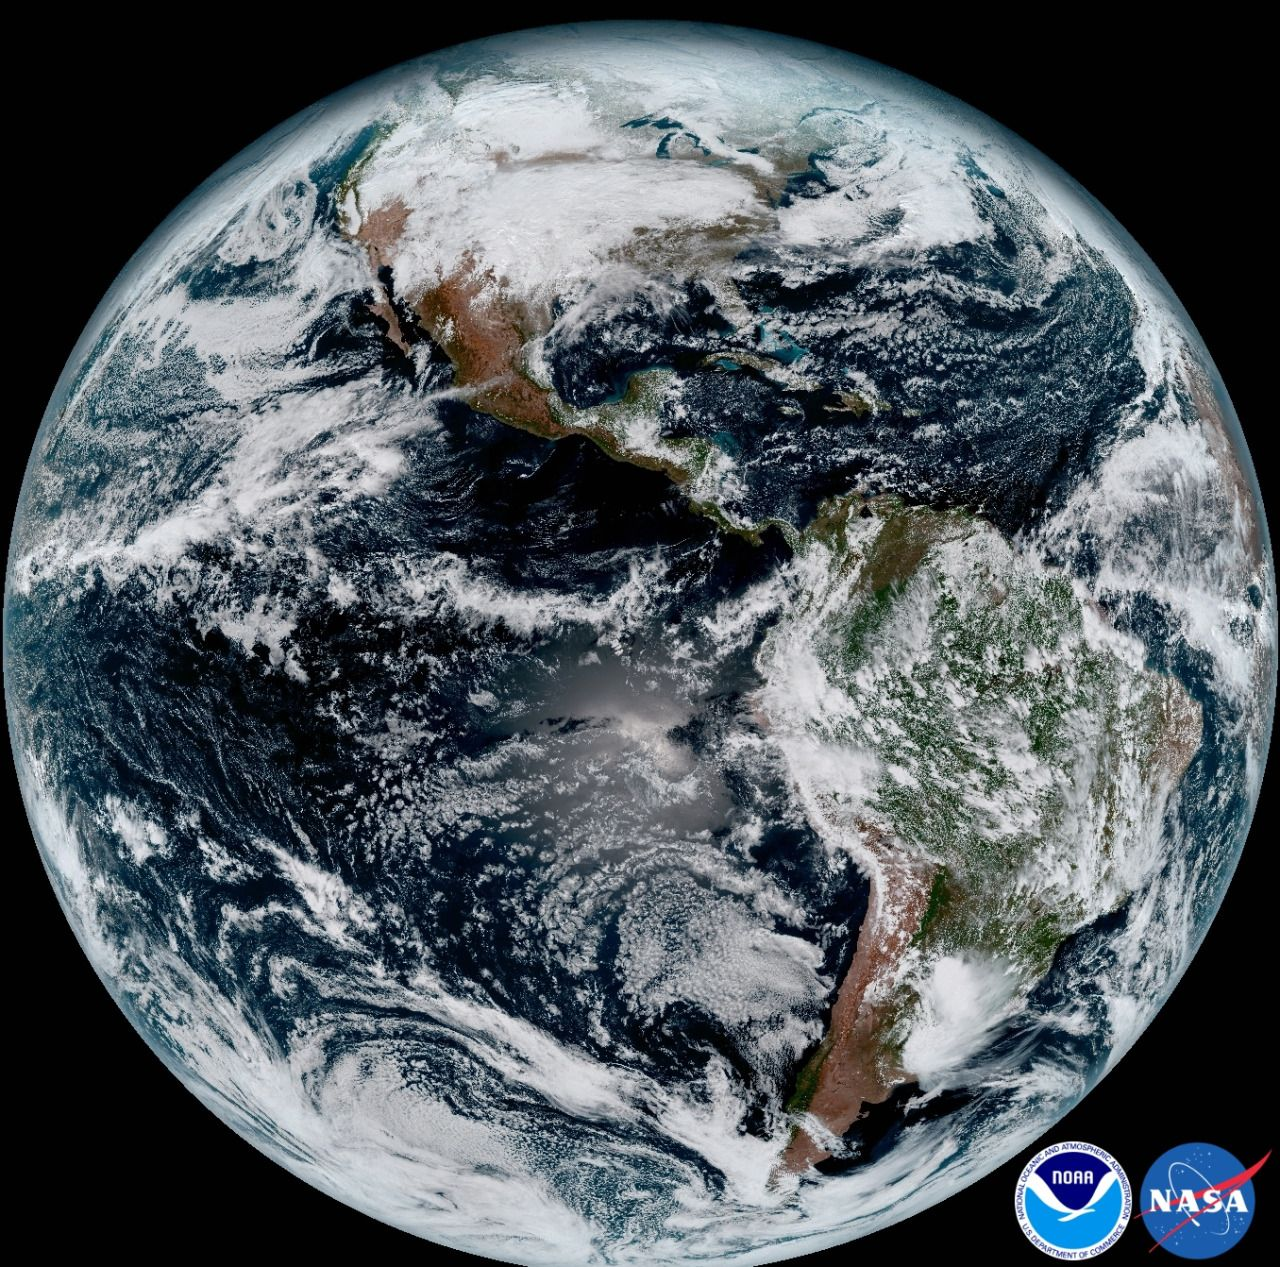 New Weather Satellite Sends First Images Of Earth The Release Of The First Images Today From Noaas Newest Sate Weather Satellite Earth From Space Nasa Images